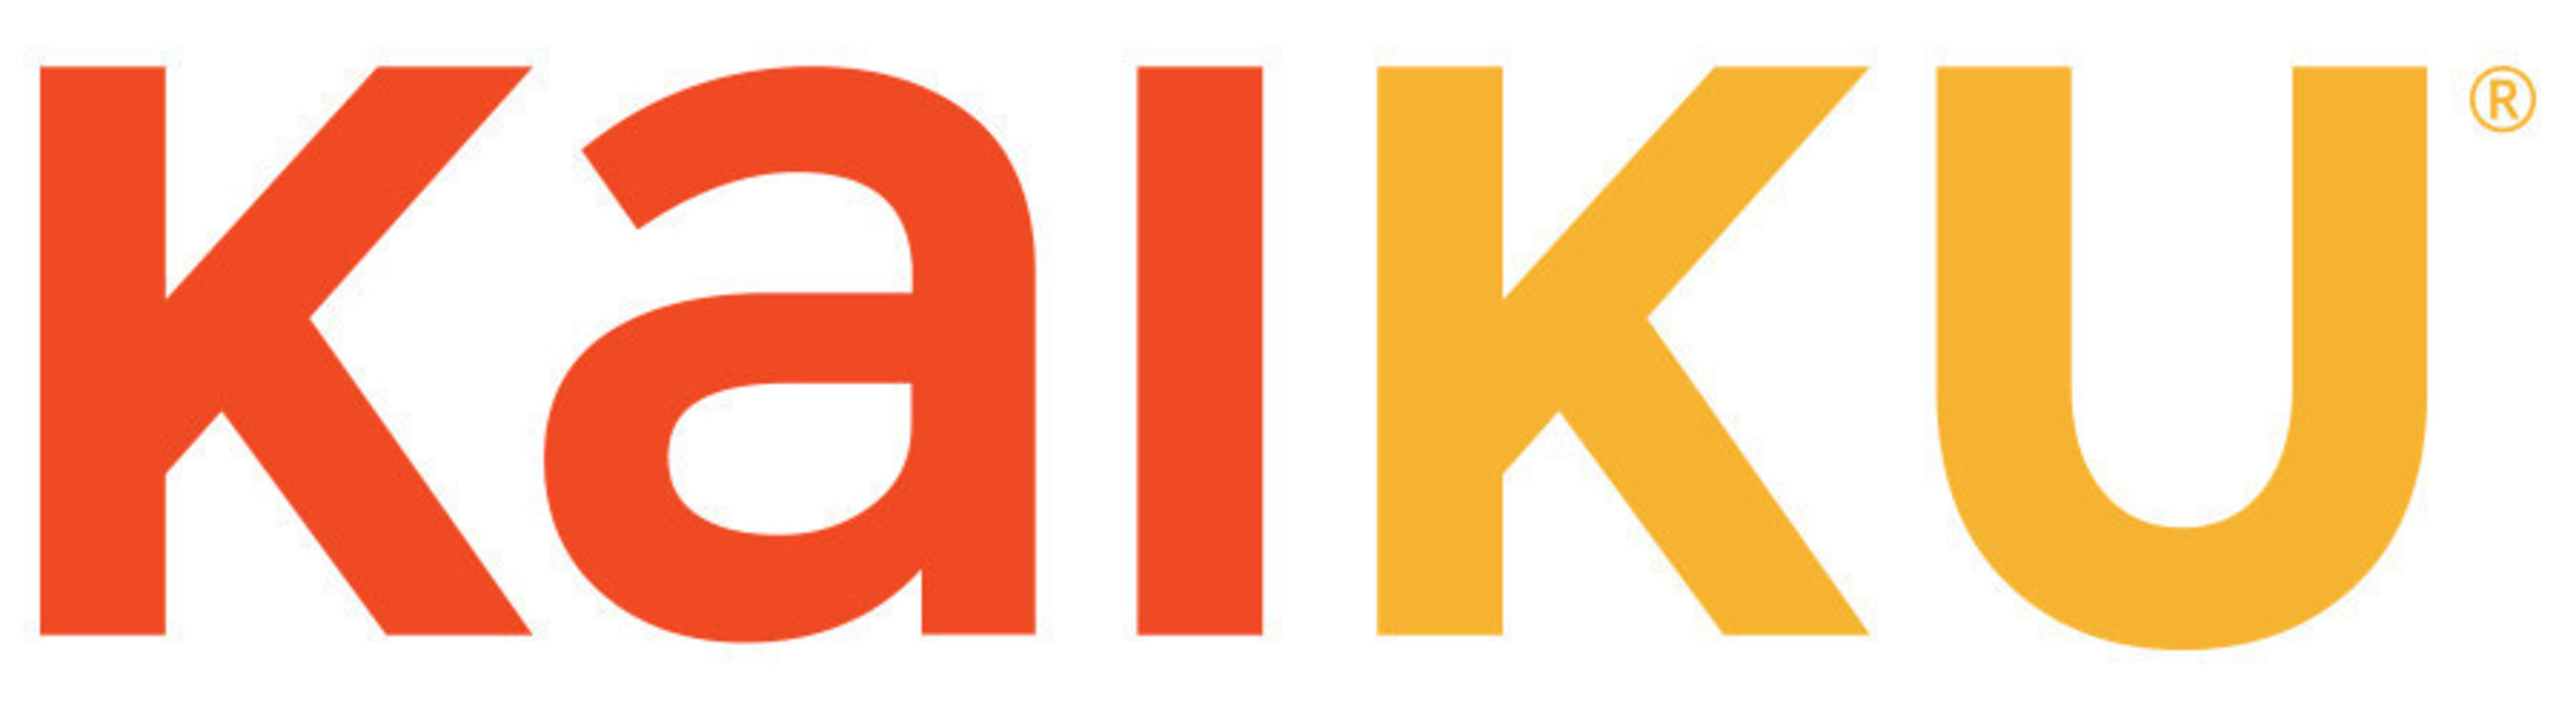 kaiku visa prepaid card launches rebrand geared to empower millennials - Kaiku Visa Prepaid Card